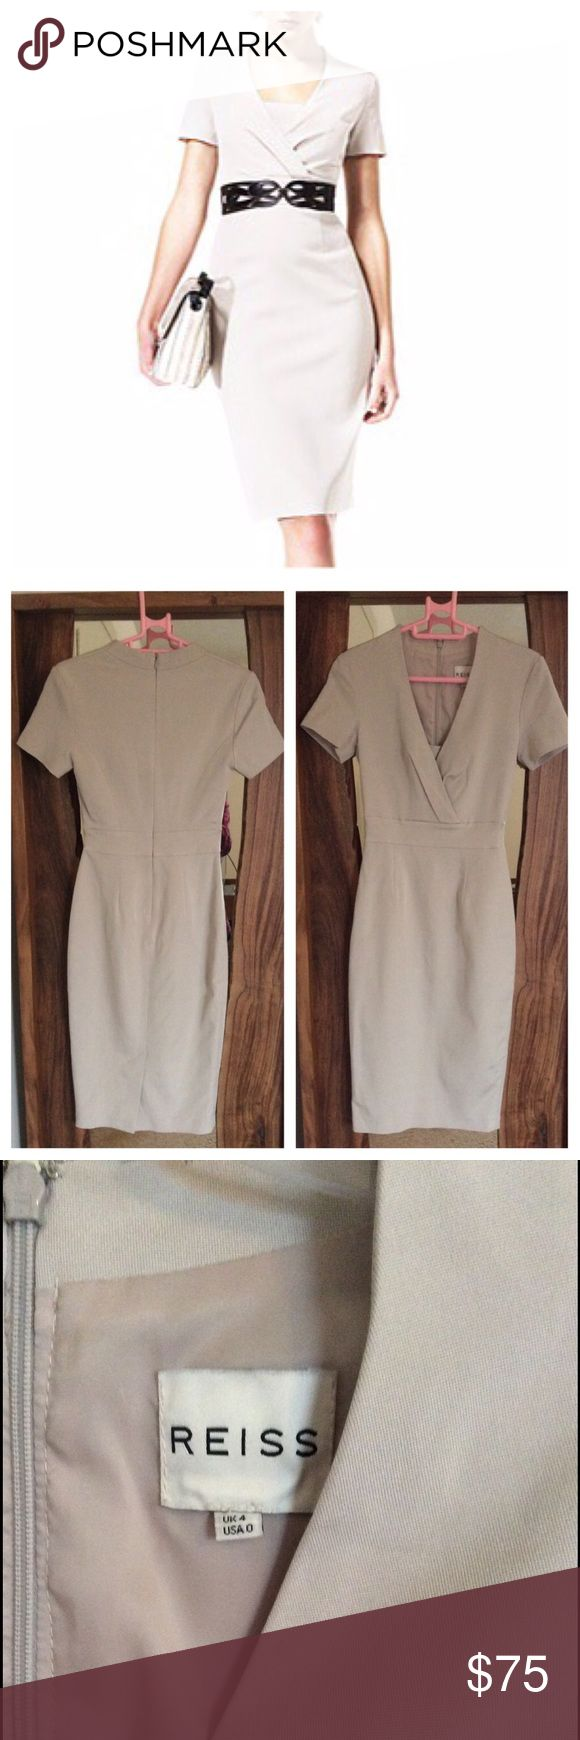 REISS dress Perfect neutral for any occasion. Very slim fitting. Worn a handful of times. EUC with Light wear in fabric. Reiss Dresses Midi